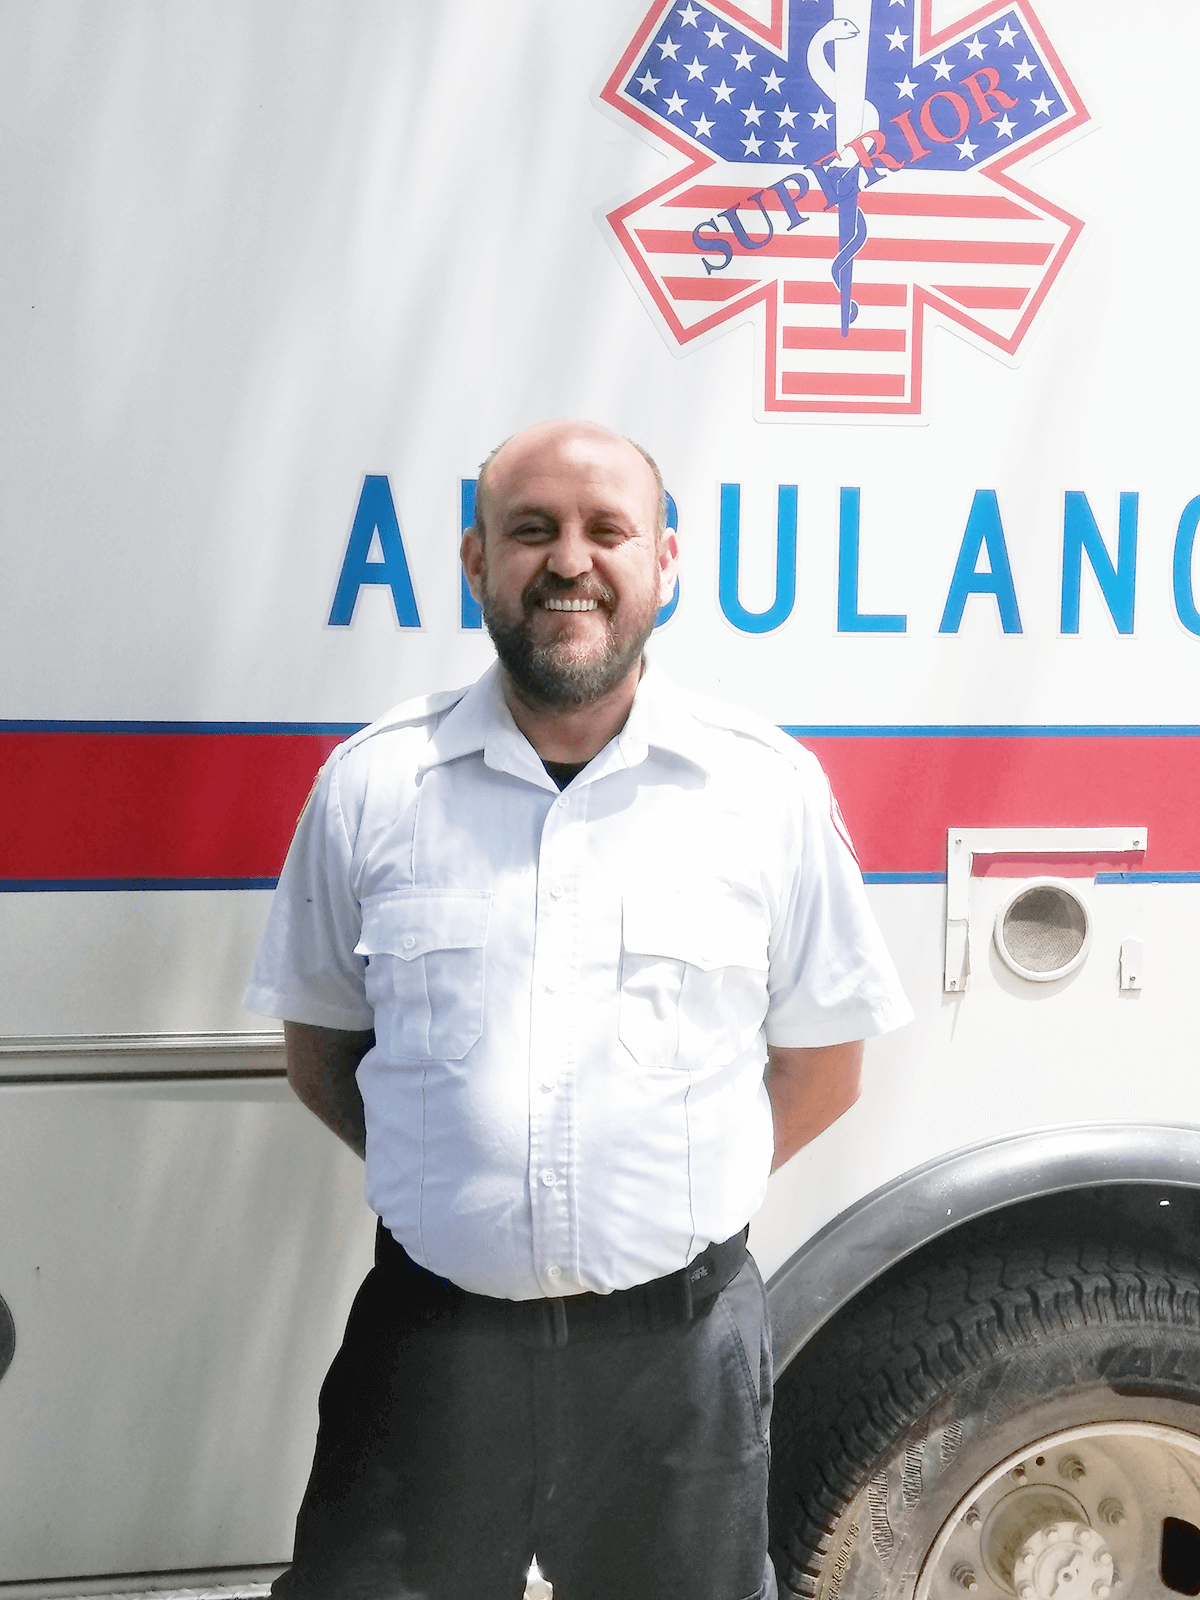 James Certain pictured standing in front of an ambulance